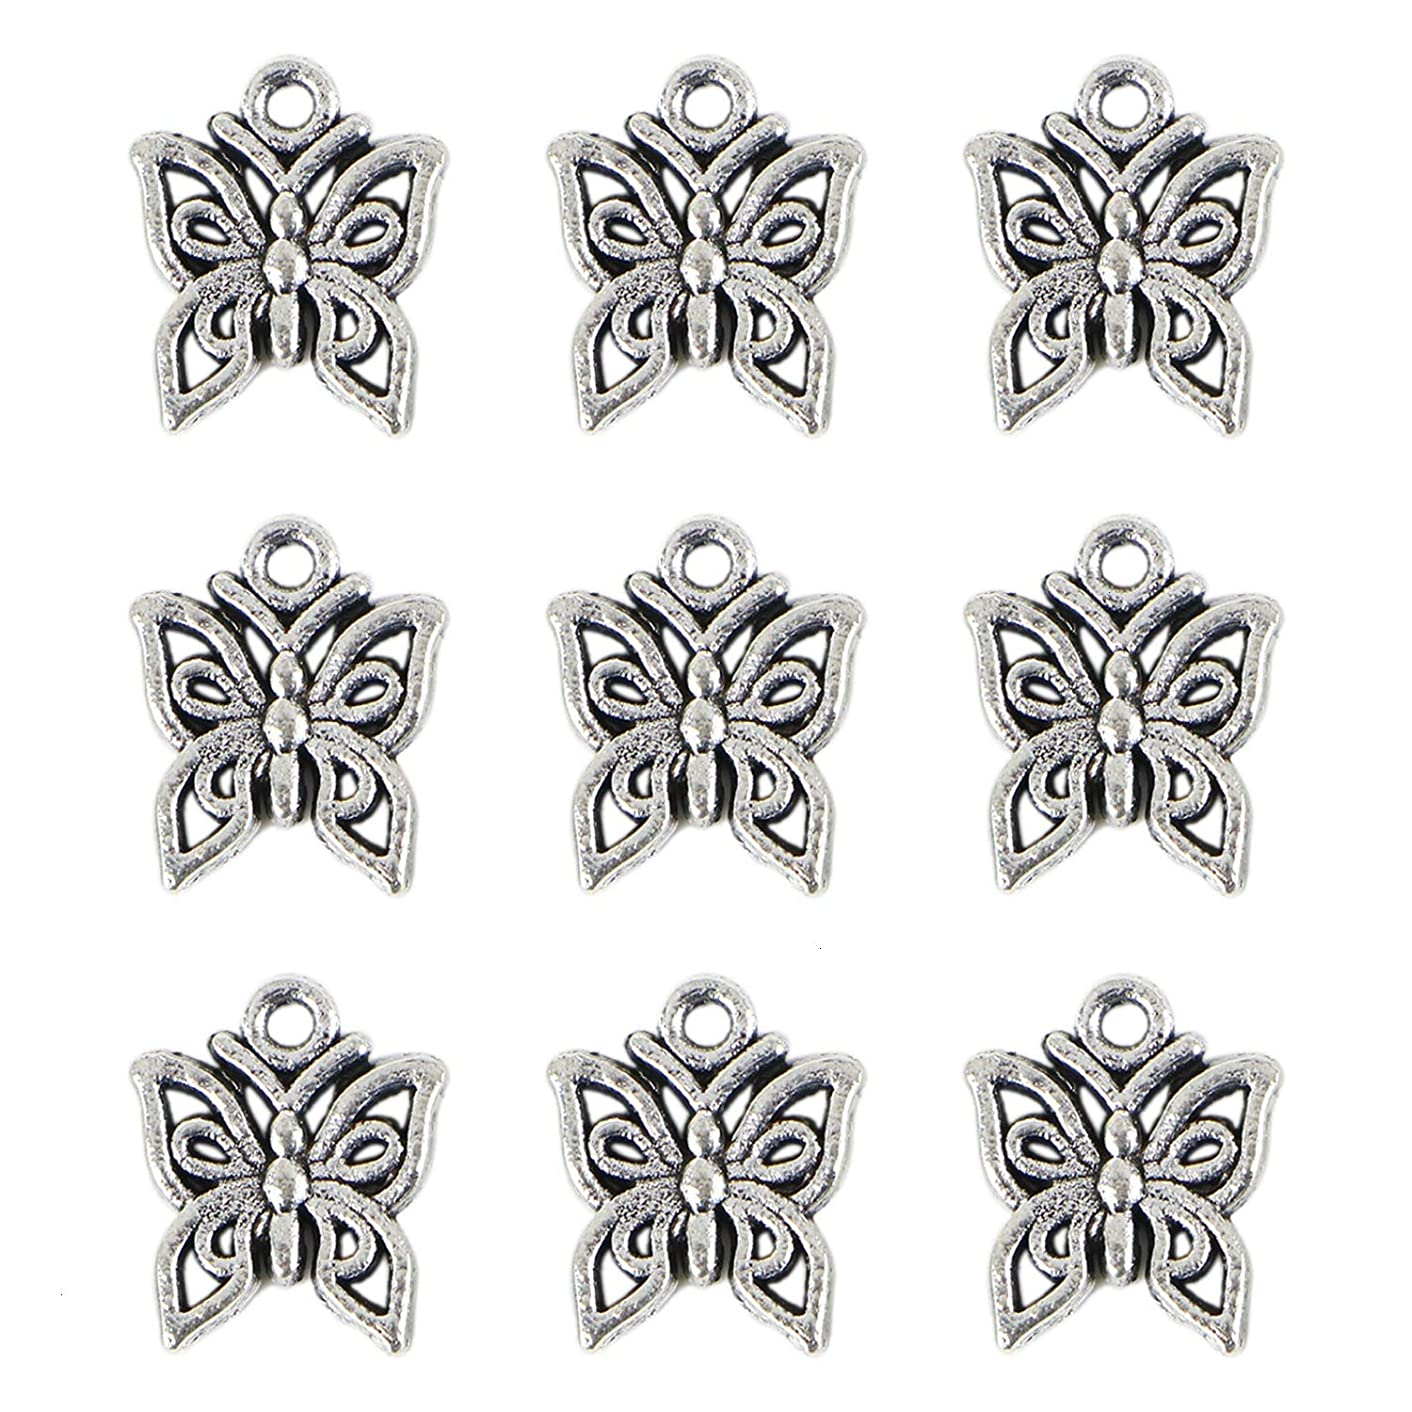 Monrocco 200PCS Charm Pendant Butterfly Tibetan Metal Beads Silver Color for Jewelry Making Bracelet(Sliver)